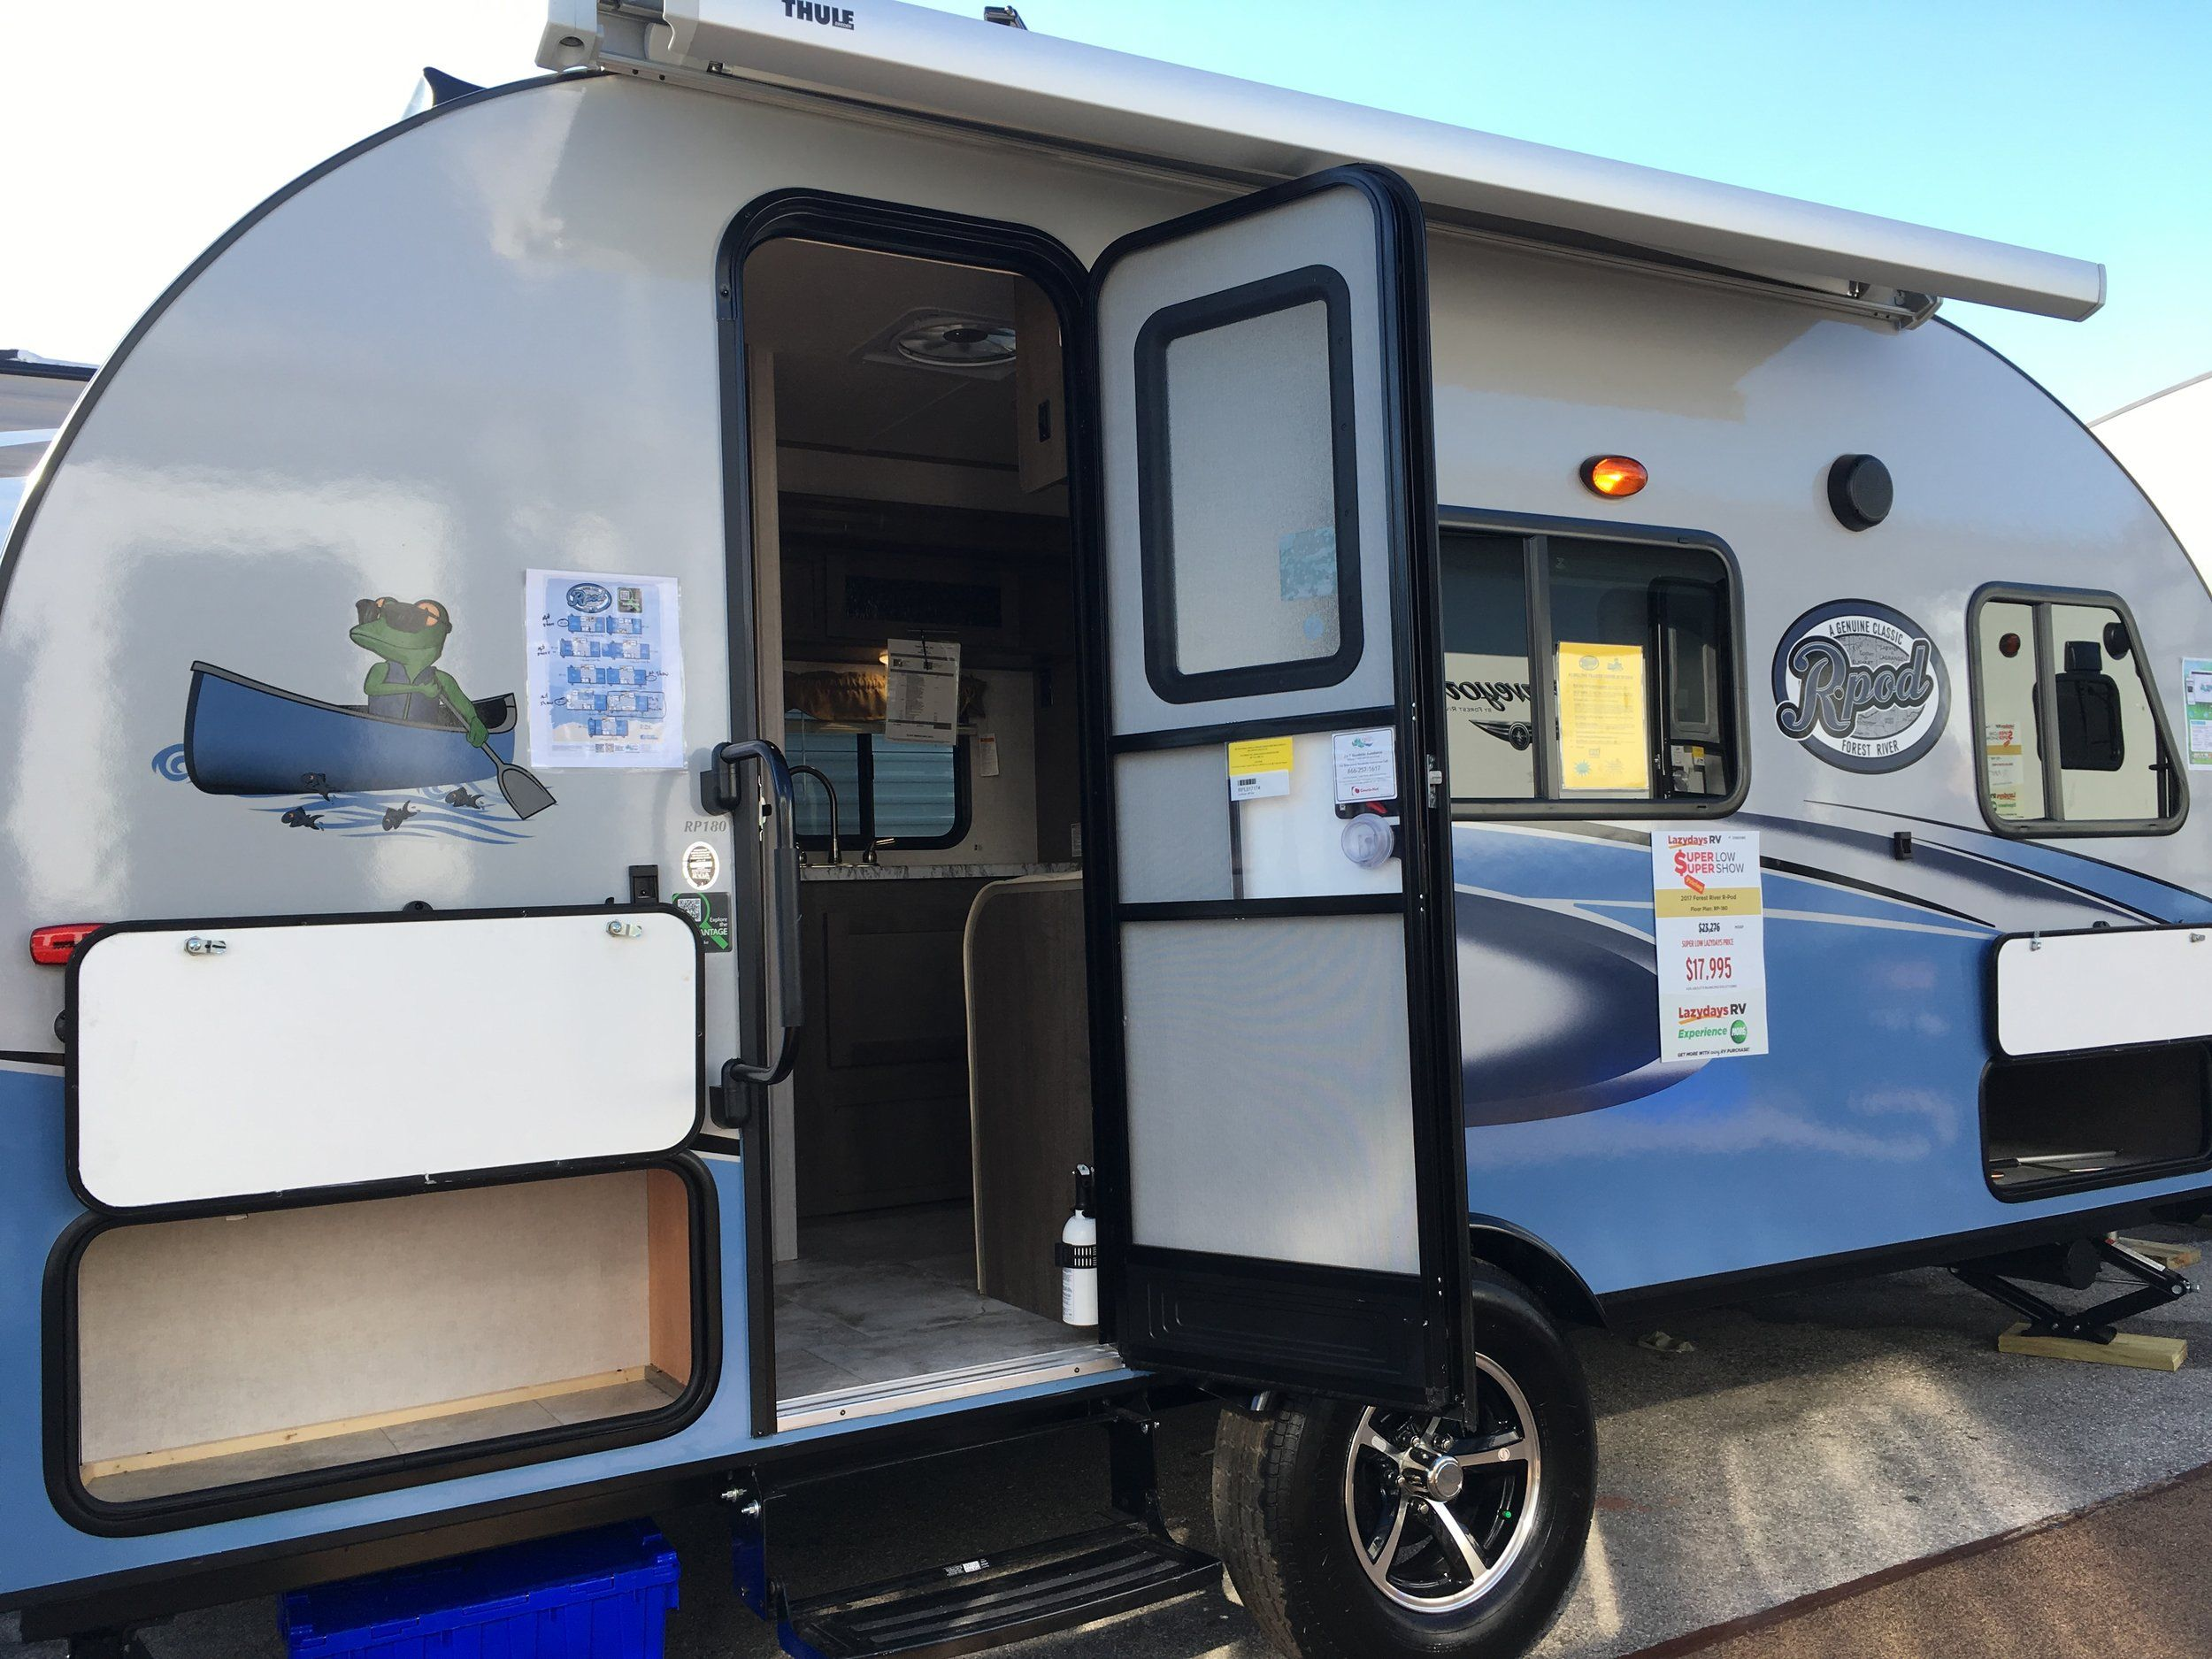 The Pros Cons Of Travel Trailers Vs Fifth Wheels Roaming Remodelers Small Travel Trailers Recreational Vehicles Travel Trailer